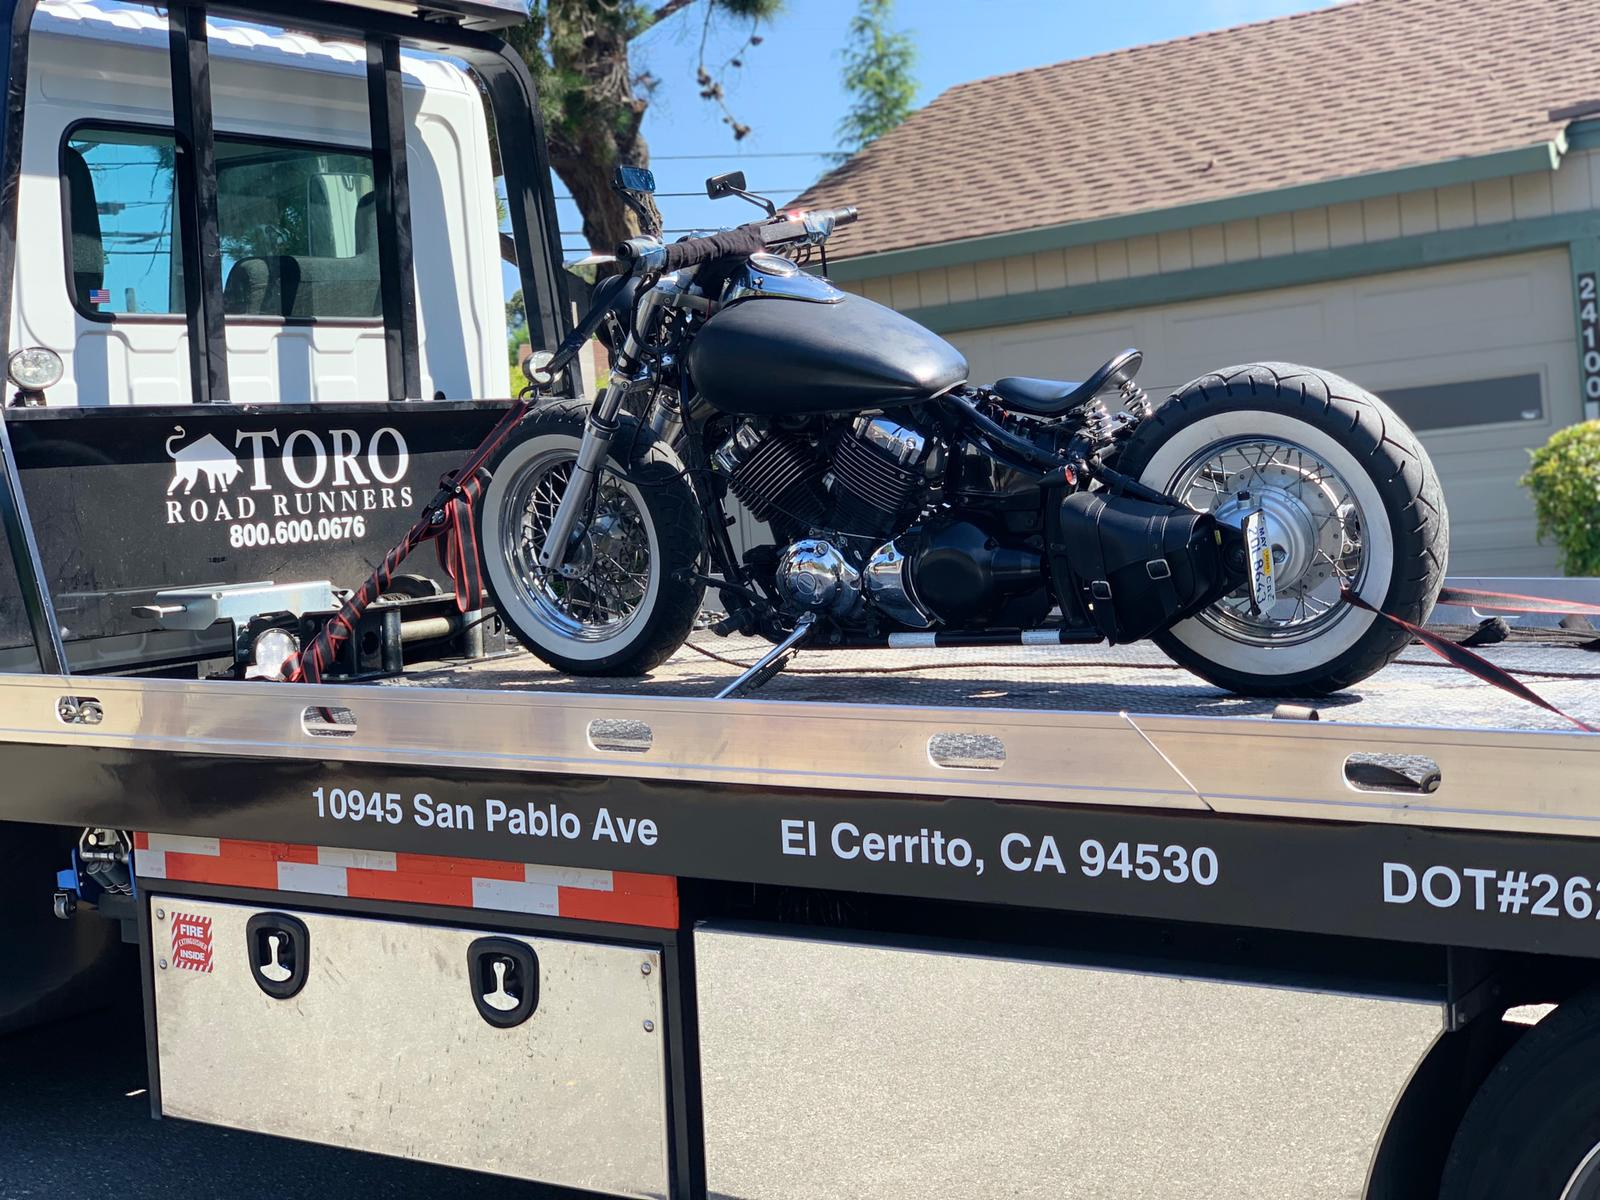 Motorcycle Towing in The Bay Area